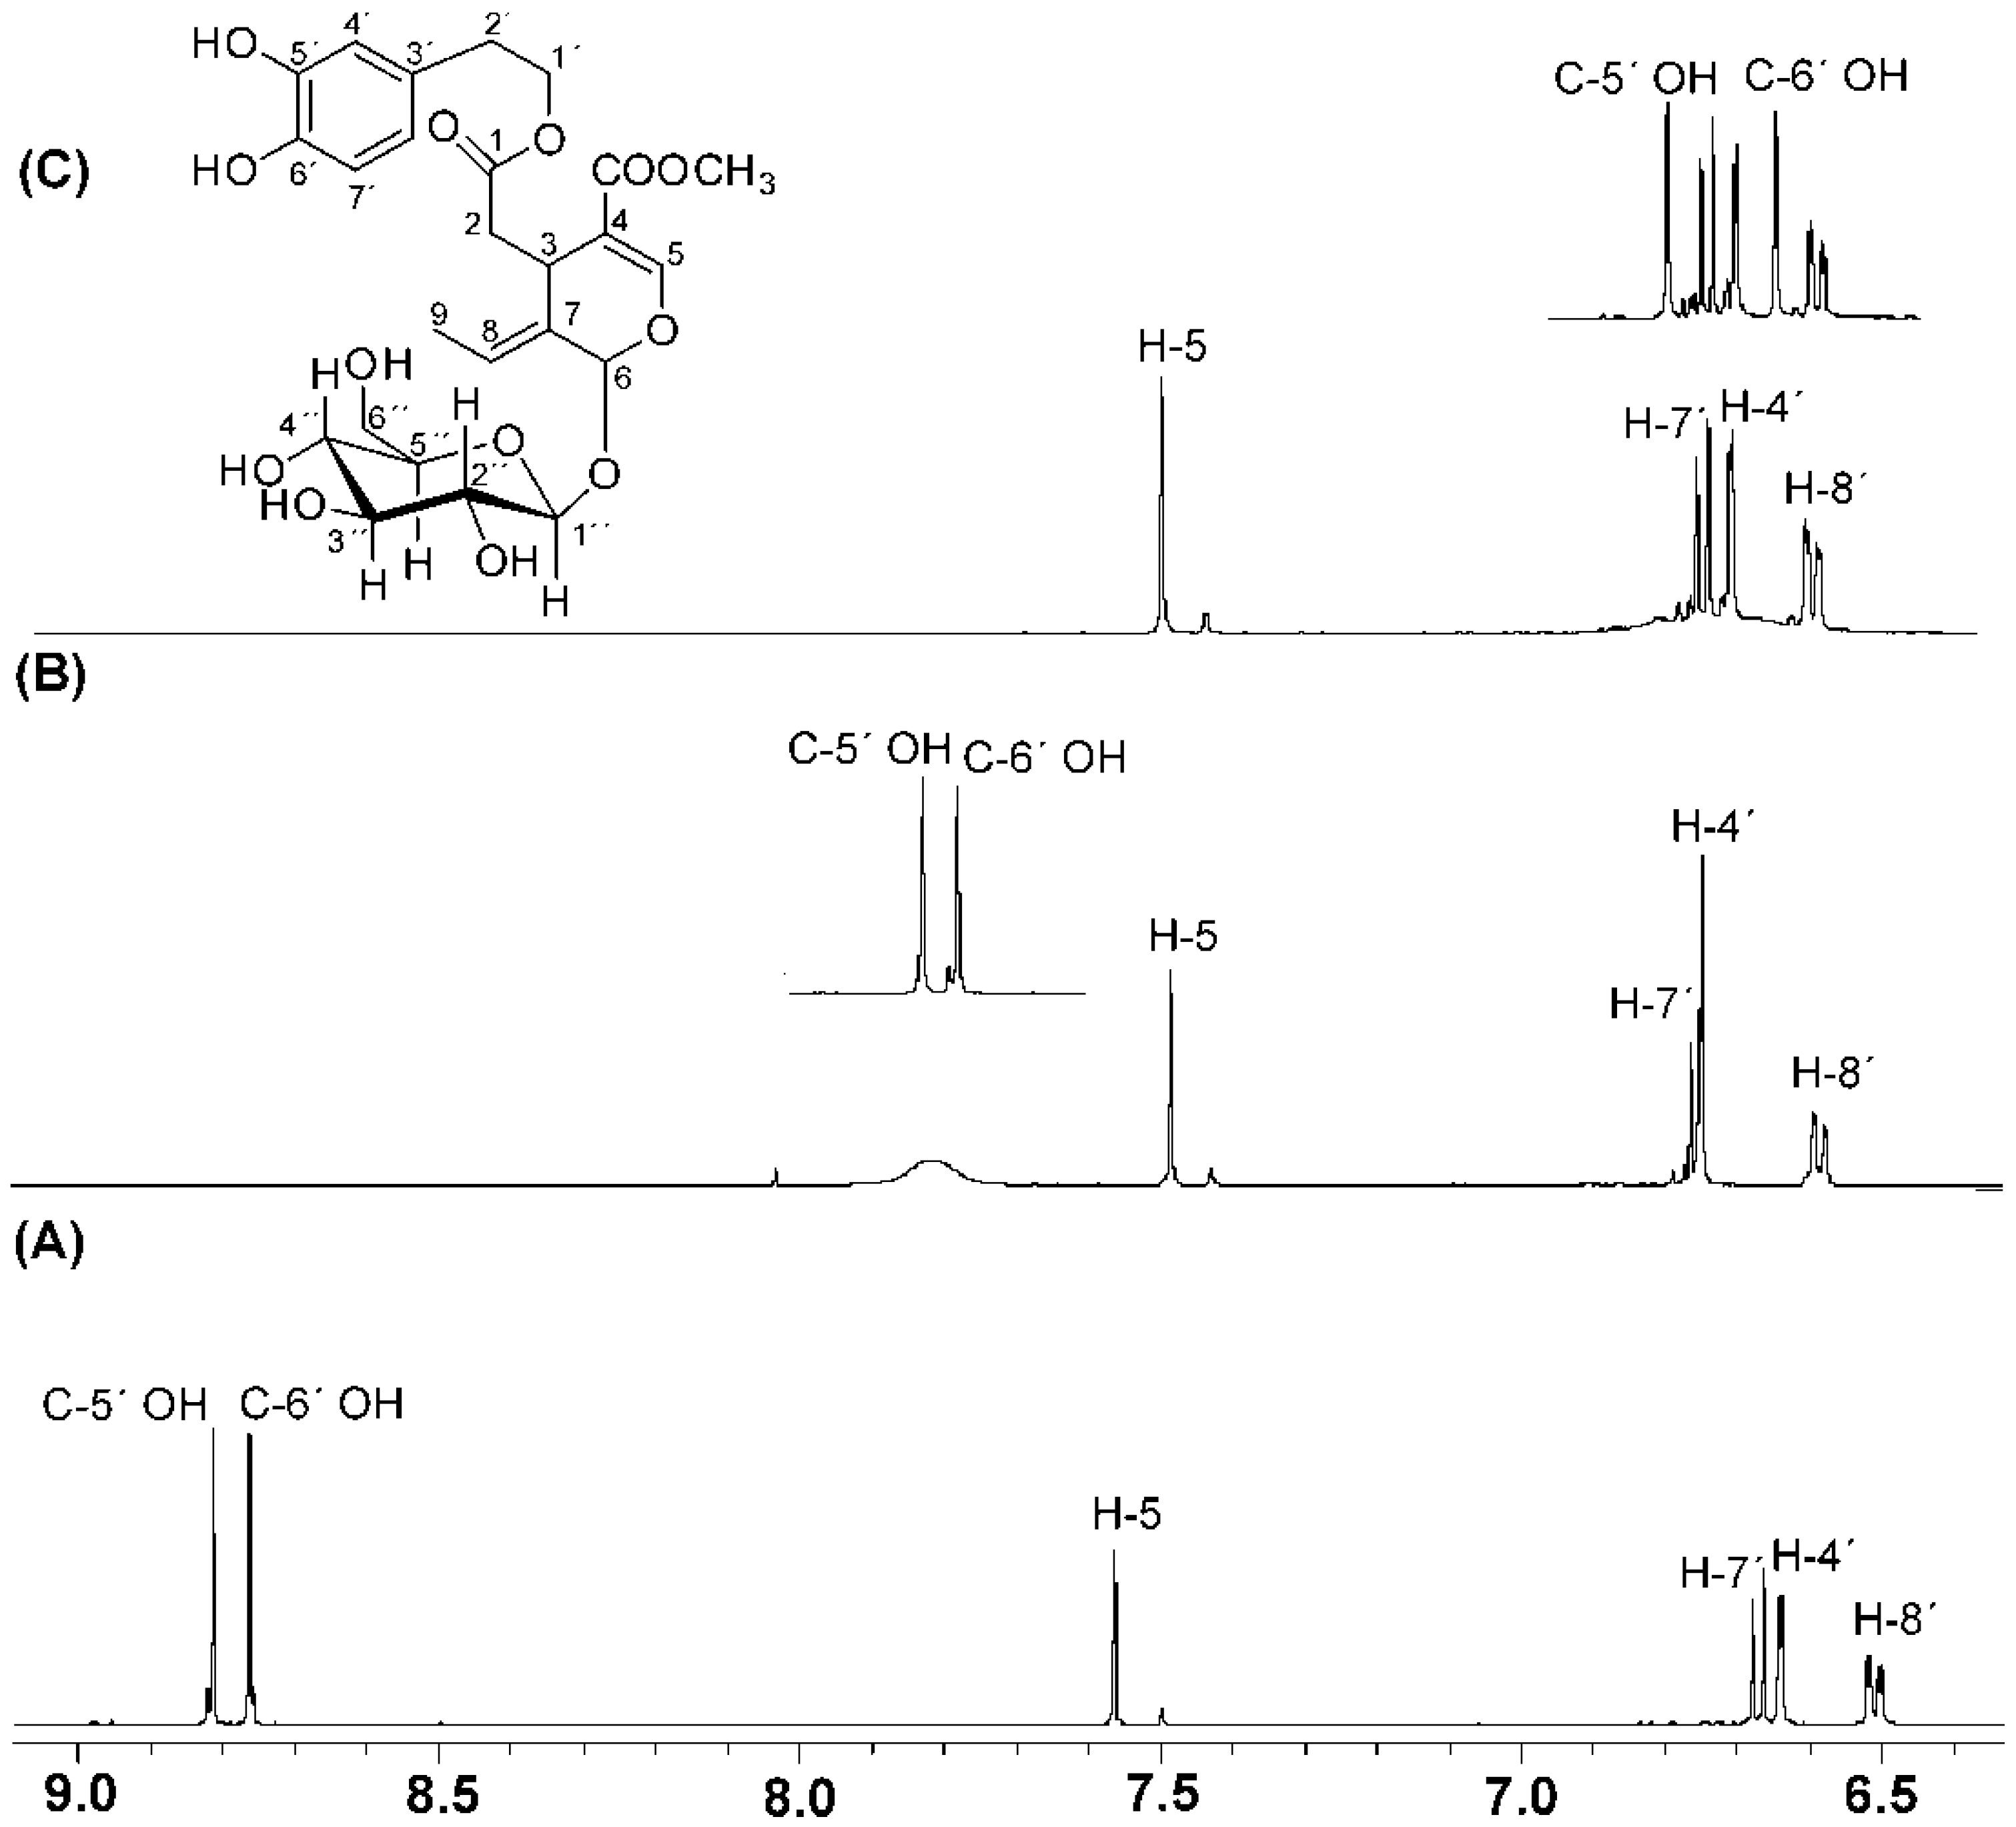 Molecules Free Full Text 1h Nmr As A Structural And Analytical Tool Of Intra And Intermolecular Hydrogen Bonds Of Phenol Containing Natural Products And Model Compounds Html